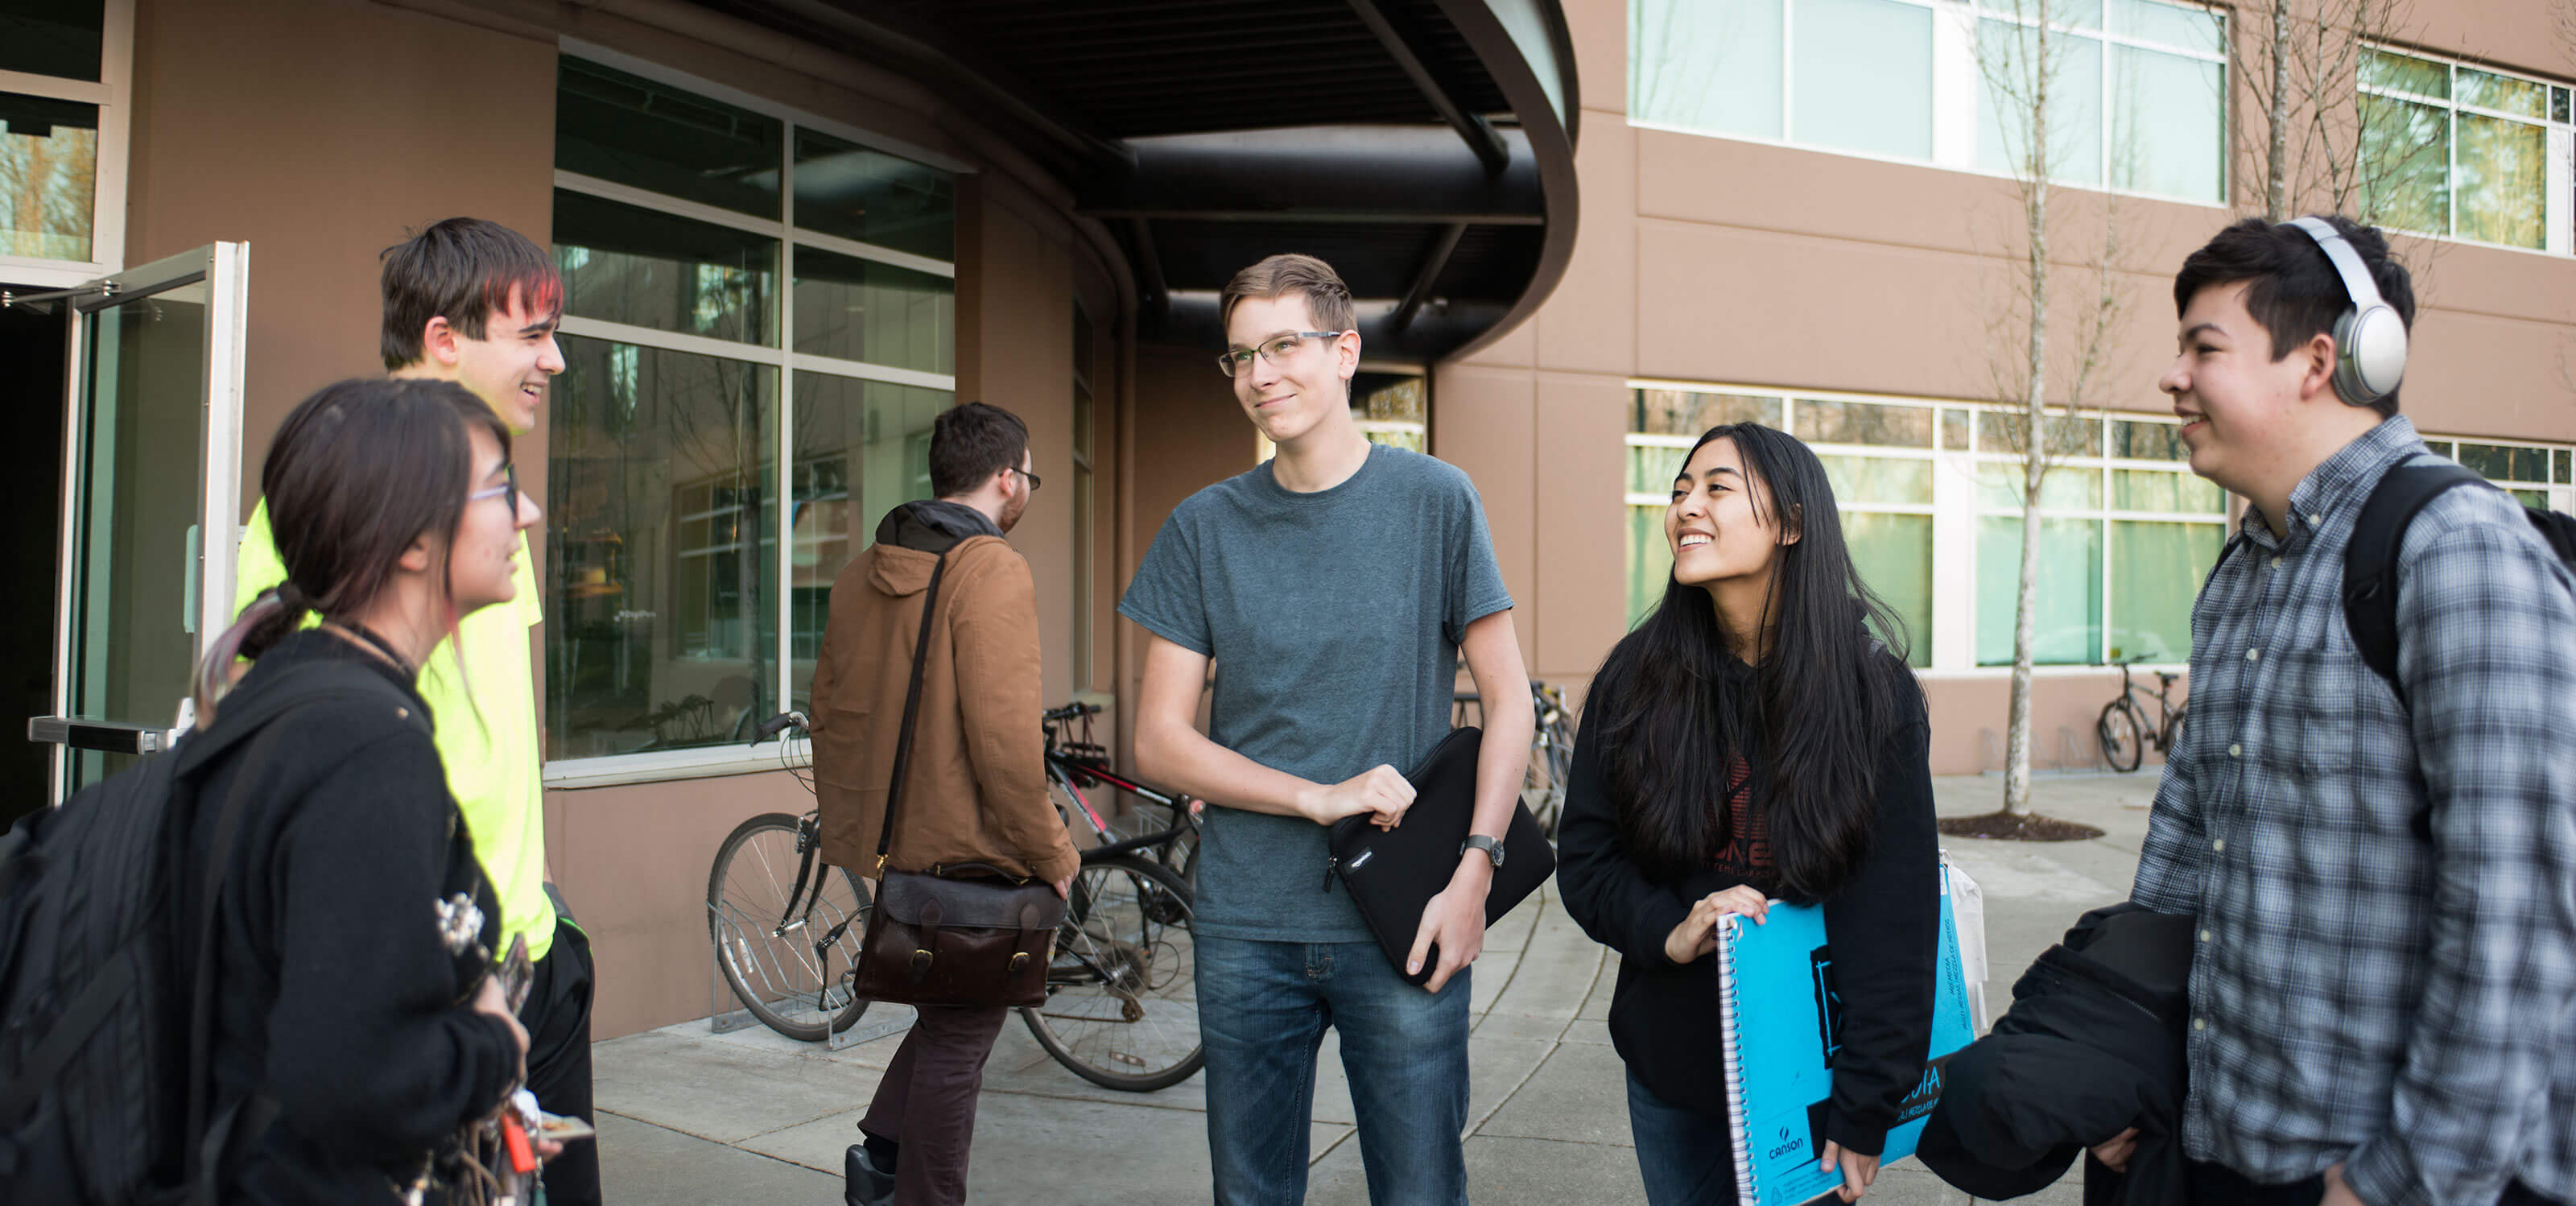 A group of students stand smiling at each other in front of the first-floor lobby of a brown building.